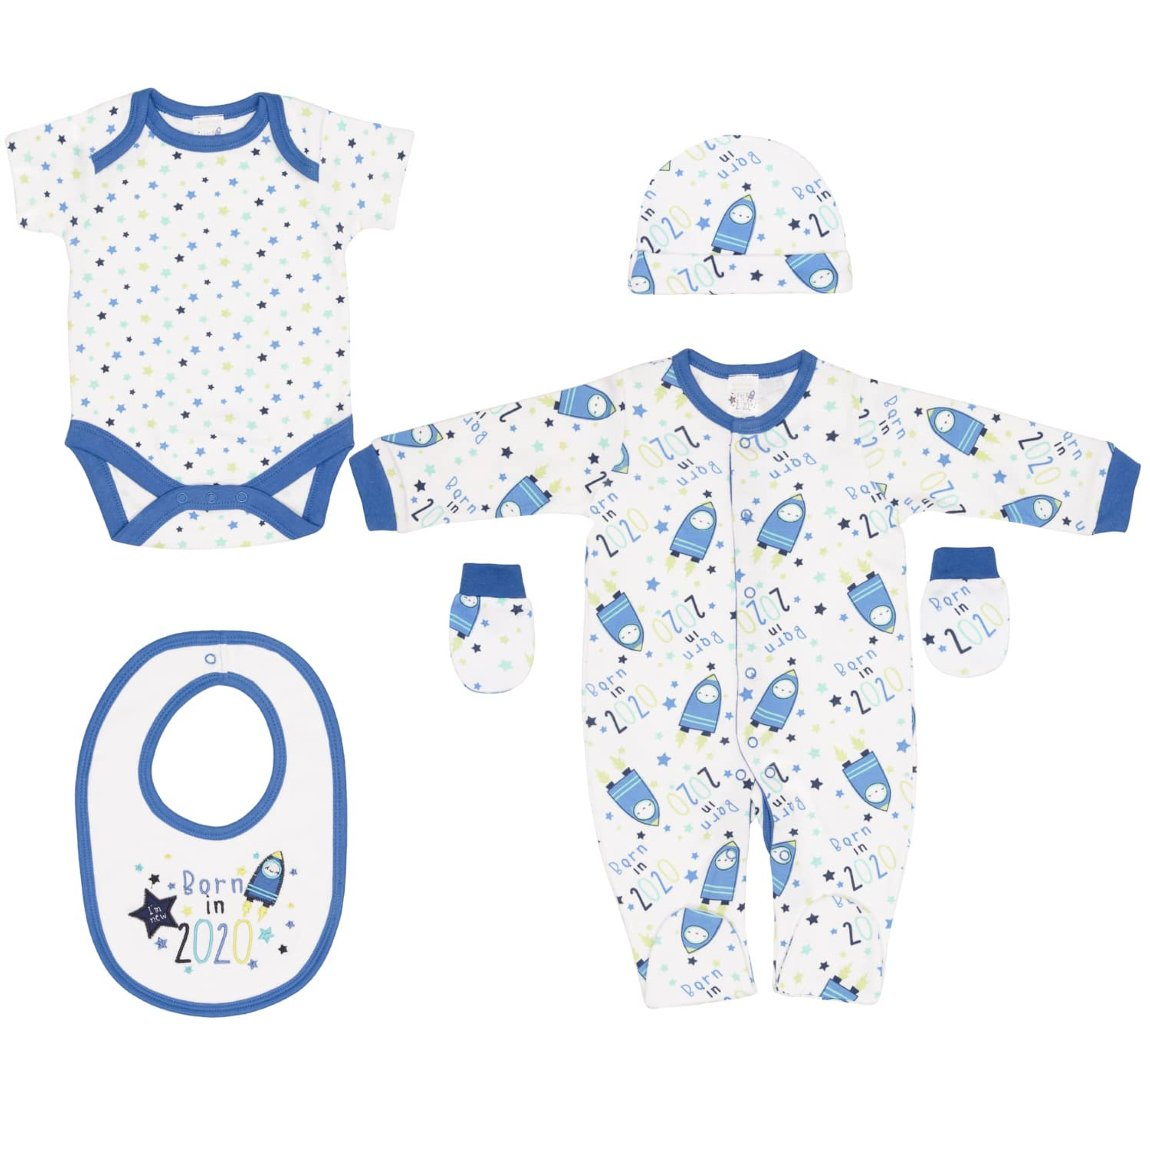 Born in 2020 Baby 5pc Set - Space